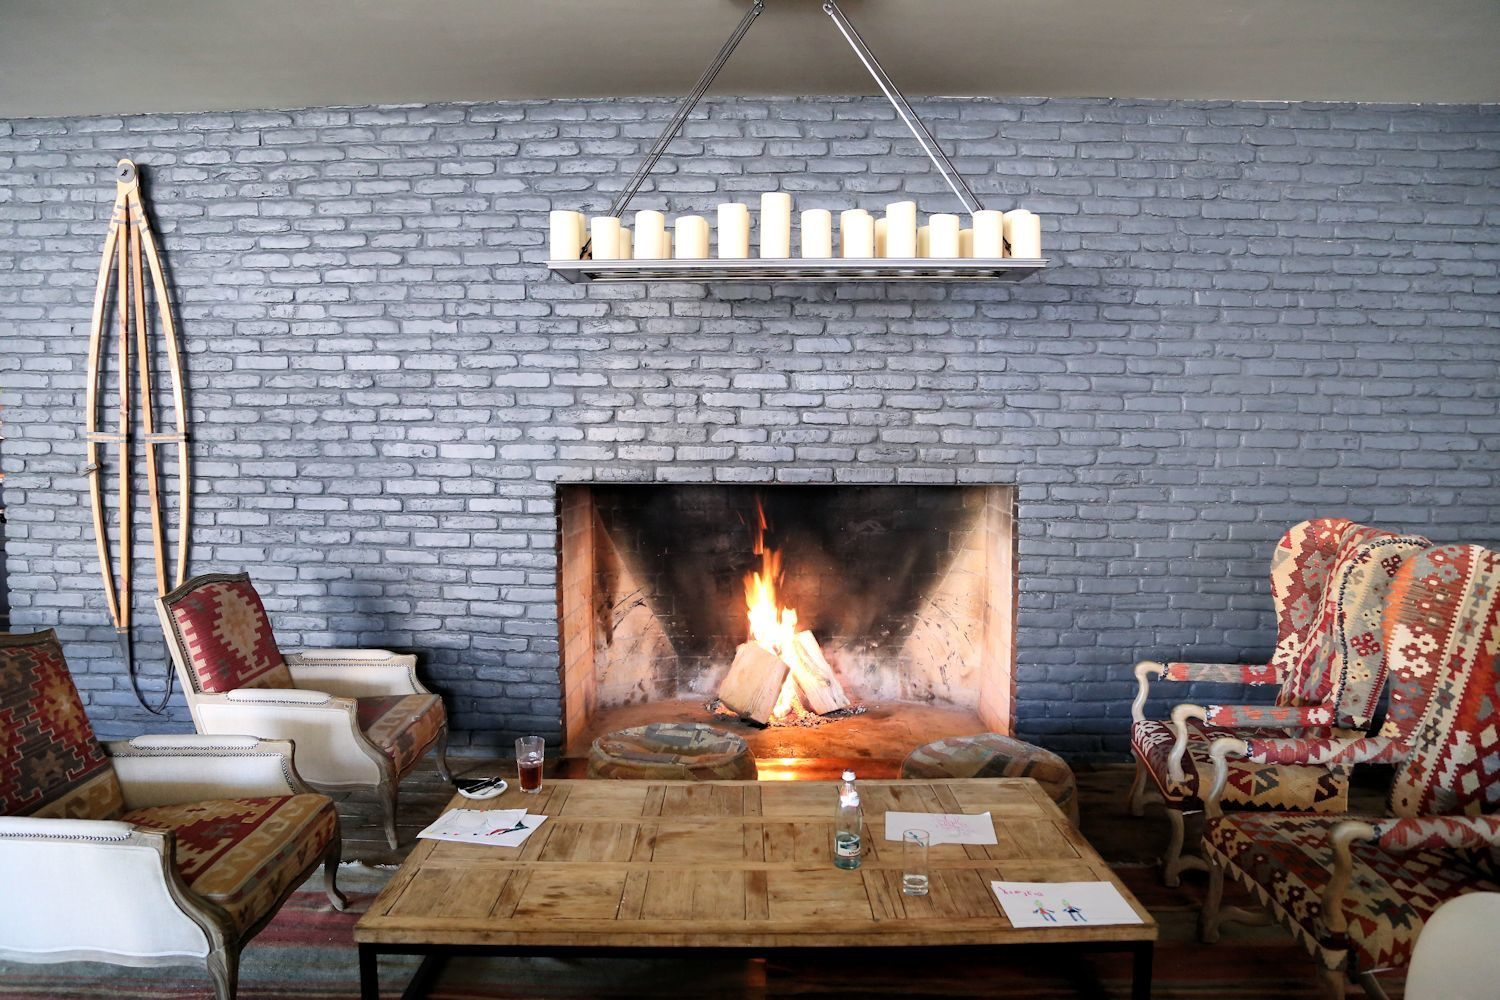 Fireplace in Kazbegi Rooms Hotel